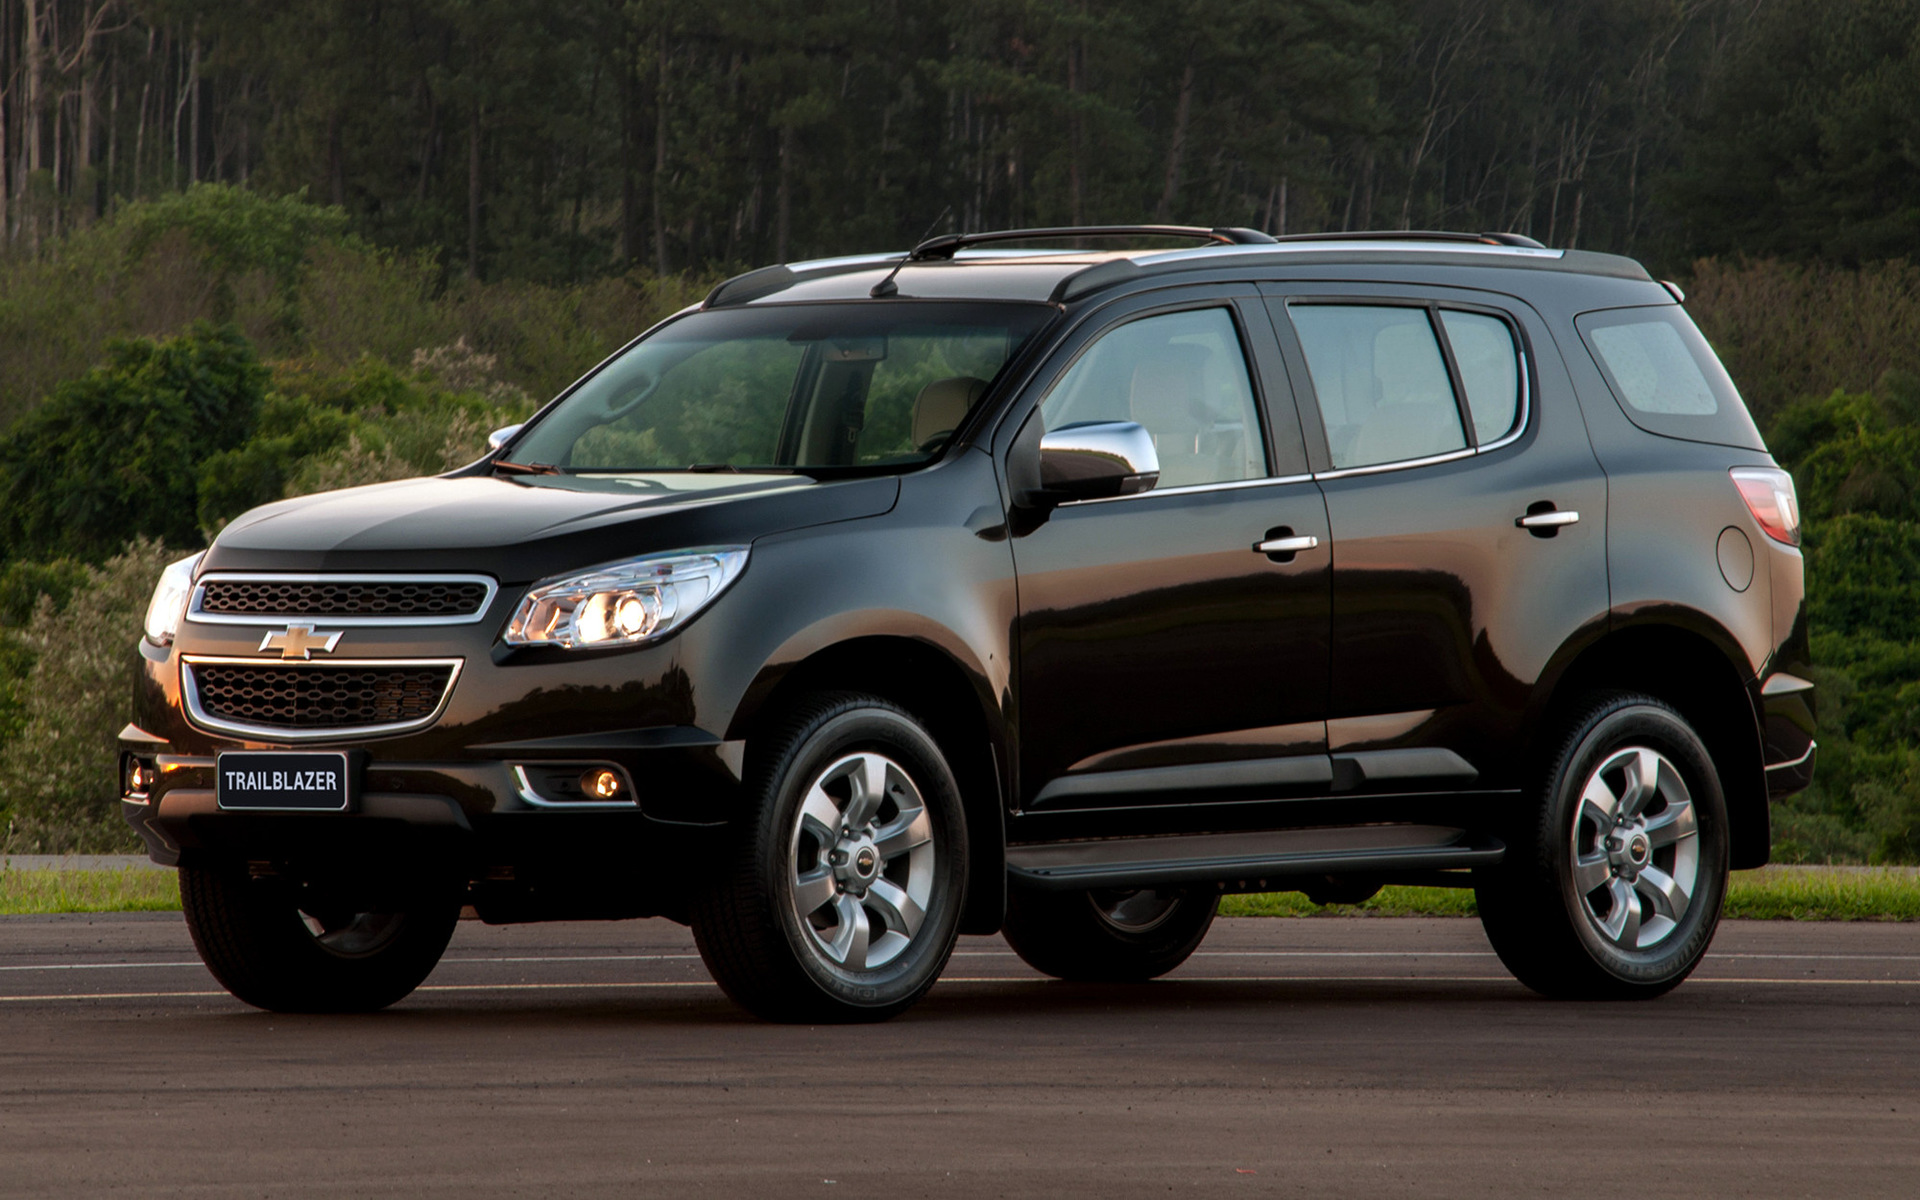 2012 Chevrolet TrailBlazer - Wallpapers and HD Images ...